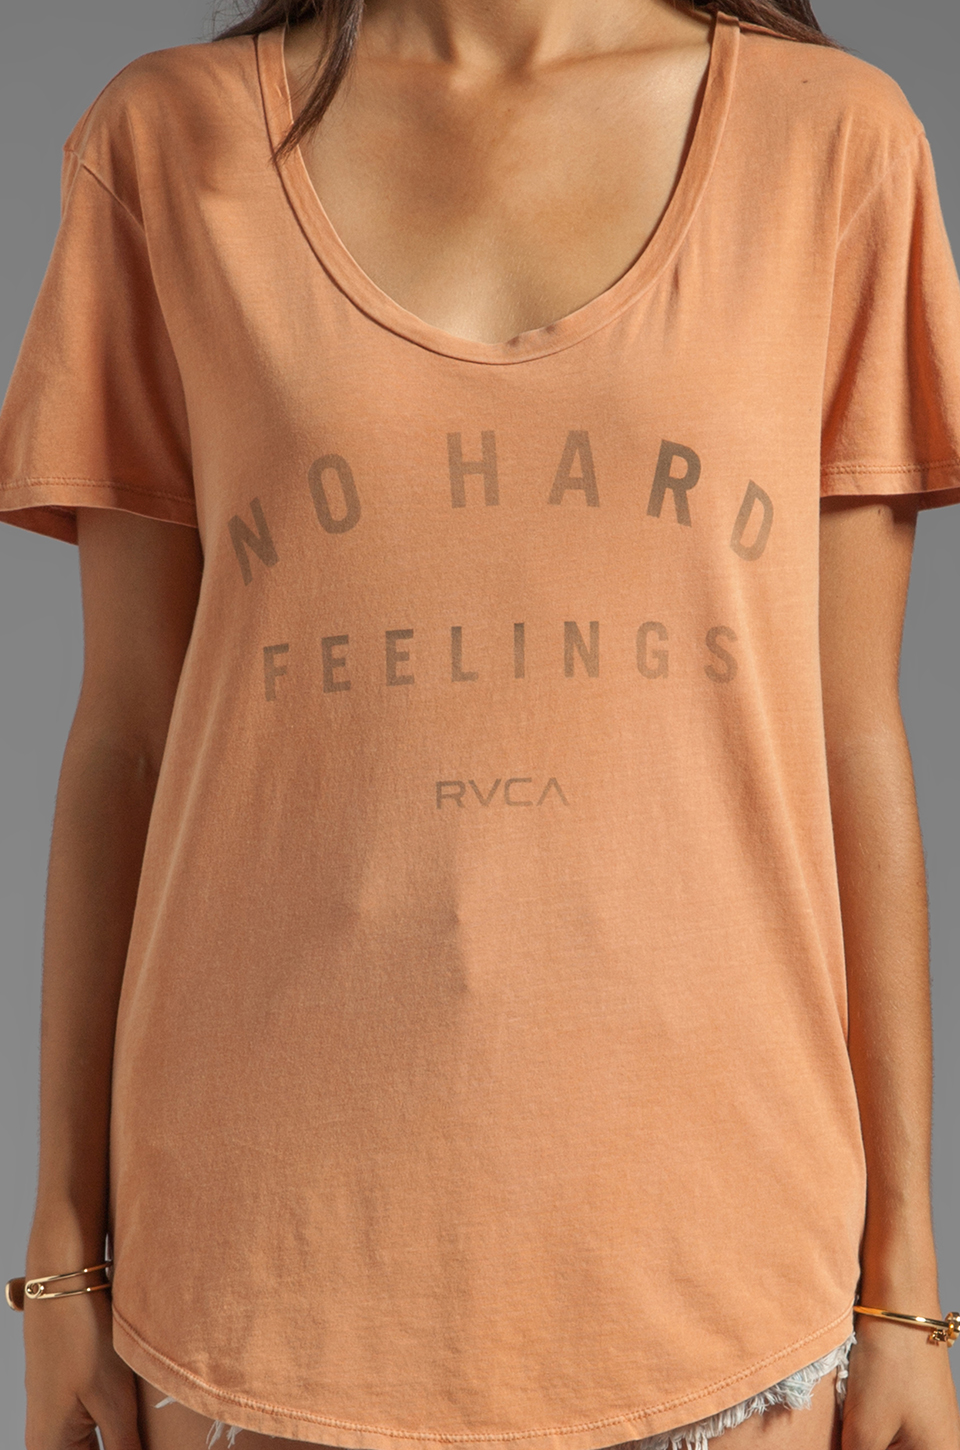 RVCA No Hard Feelings S/S Jersey Graphic Tee in Rum